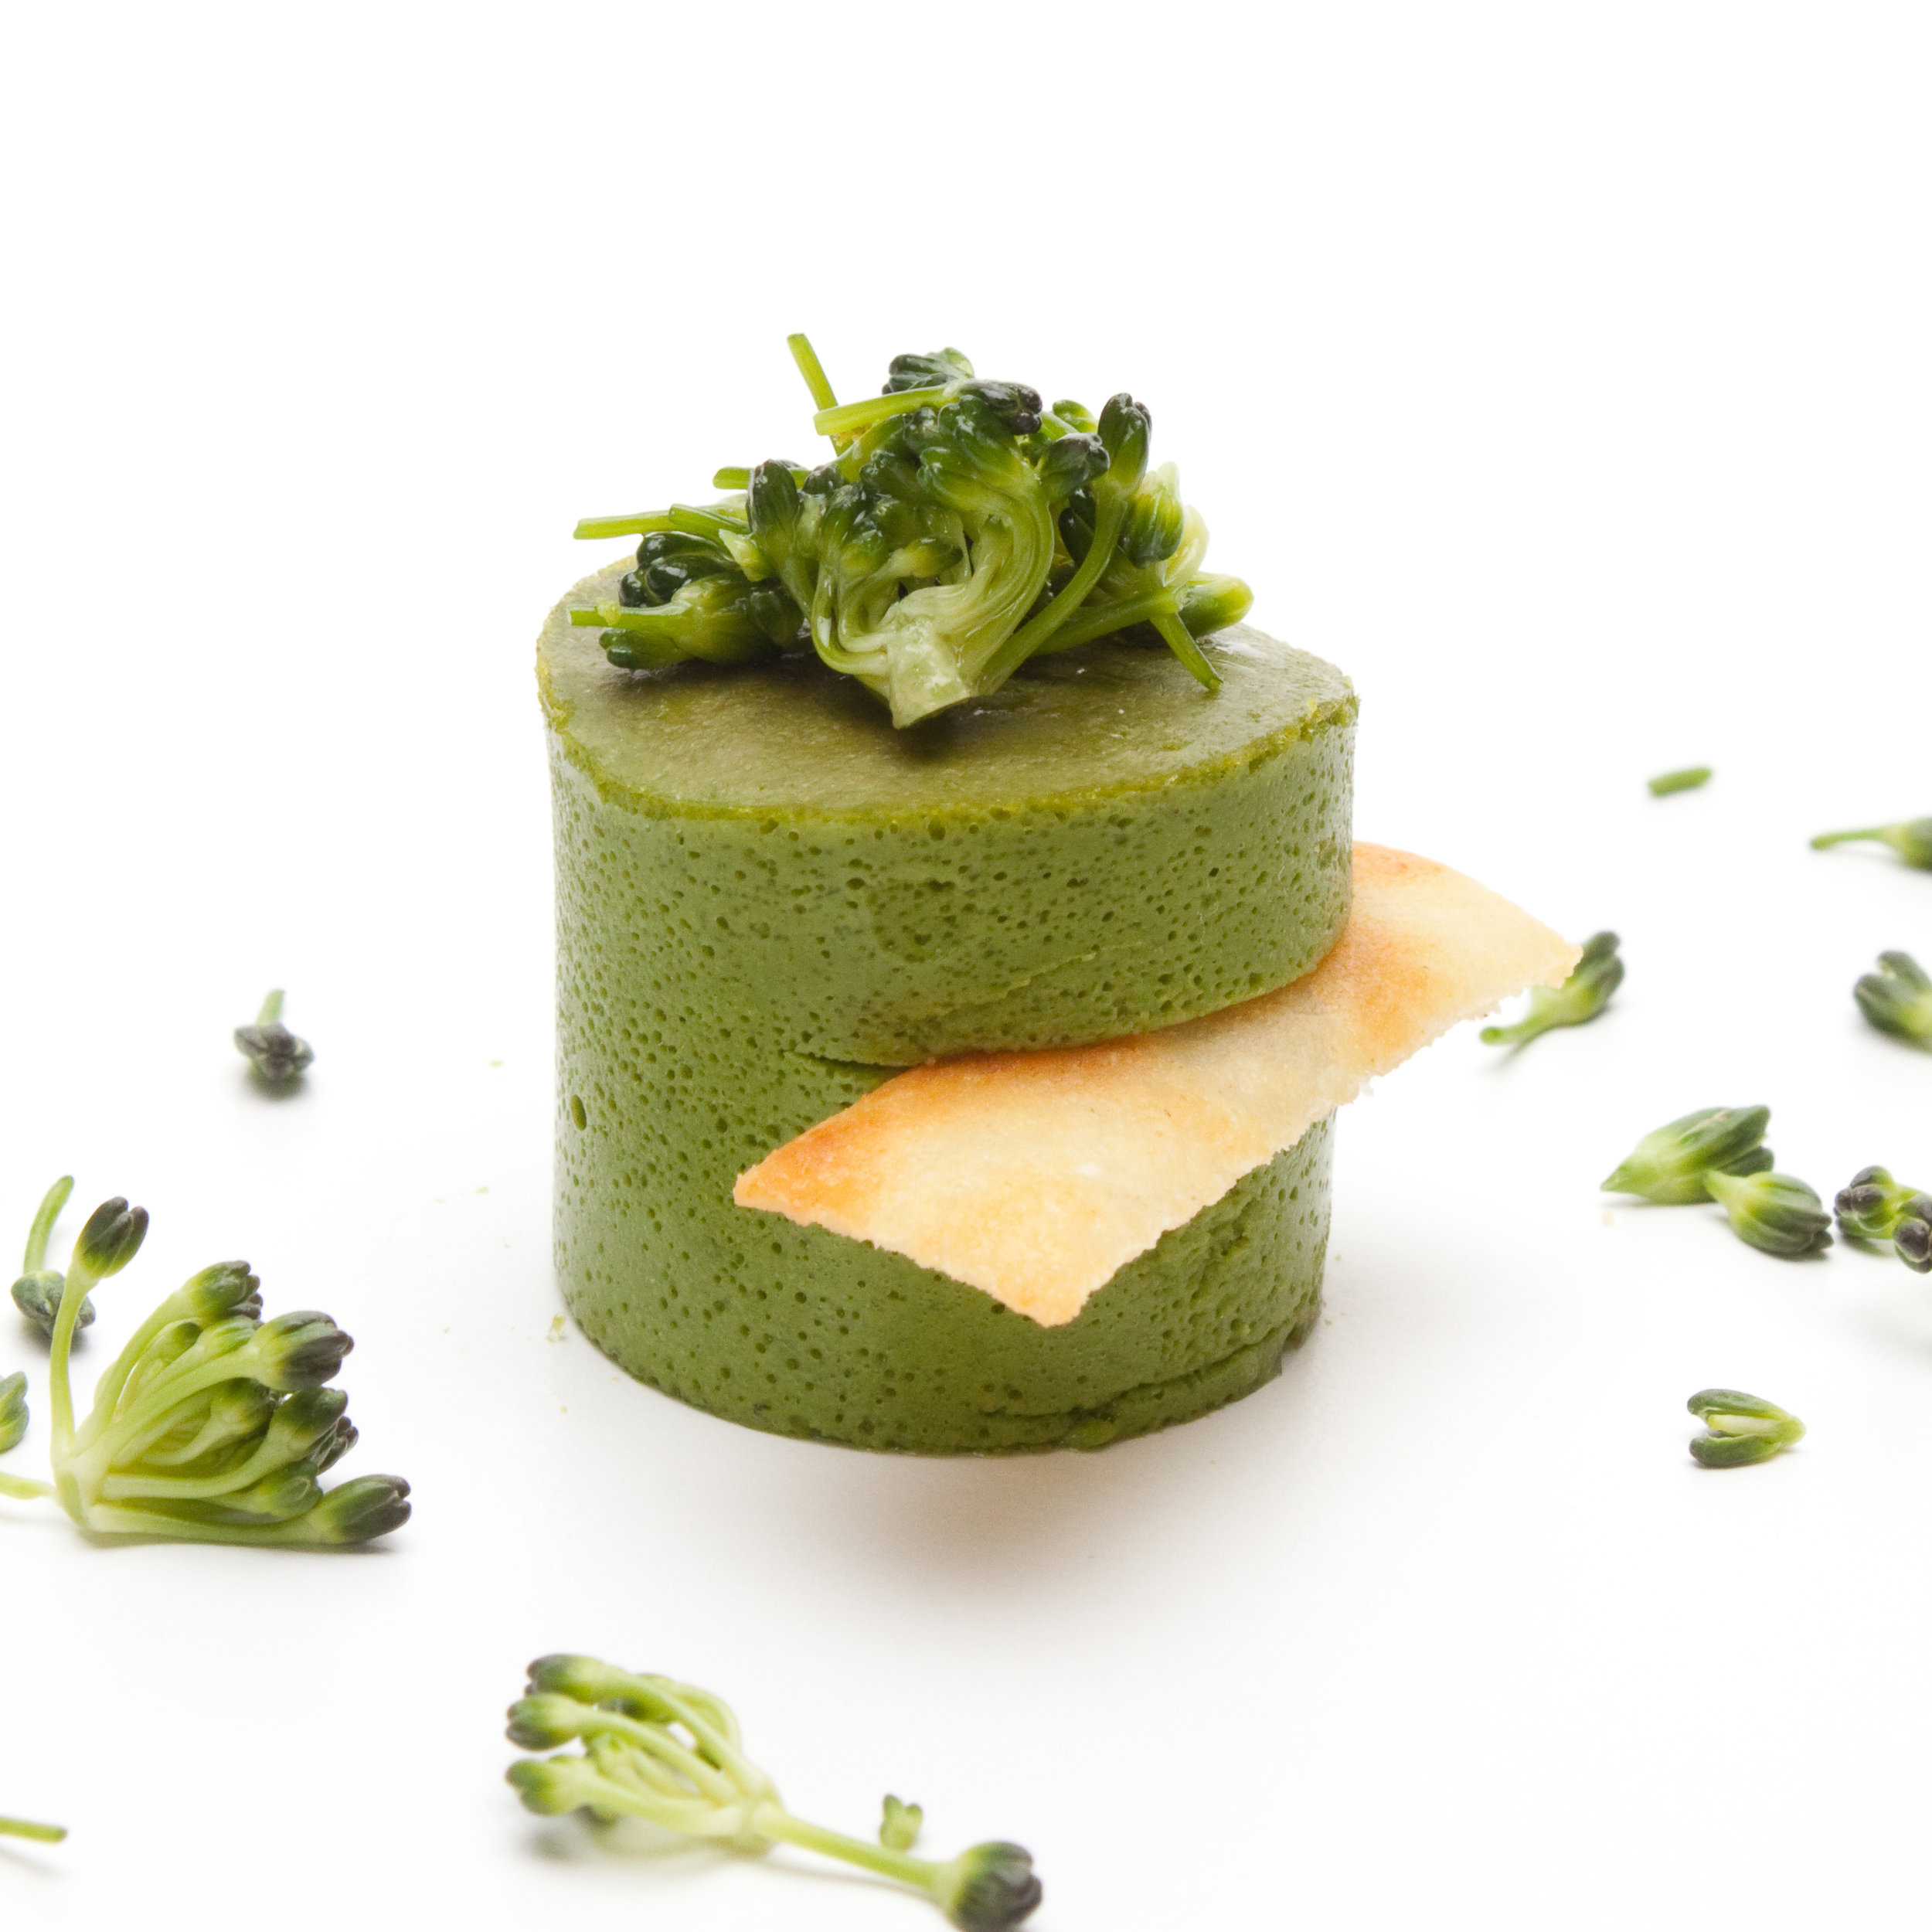 Warm Broccoli Souffle